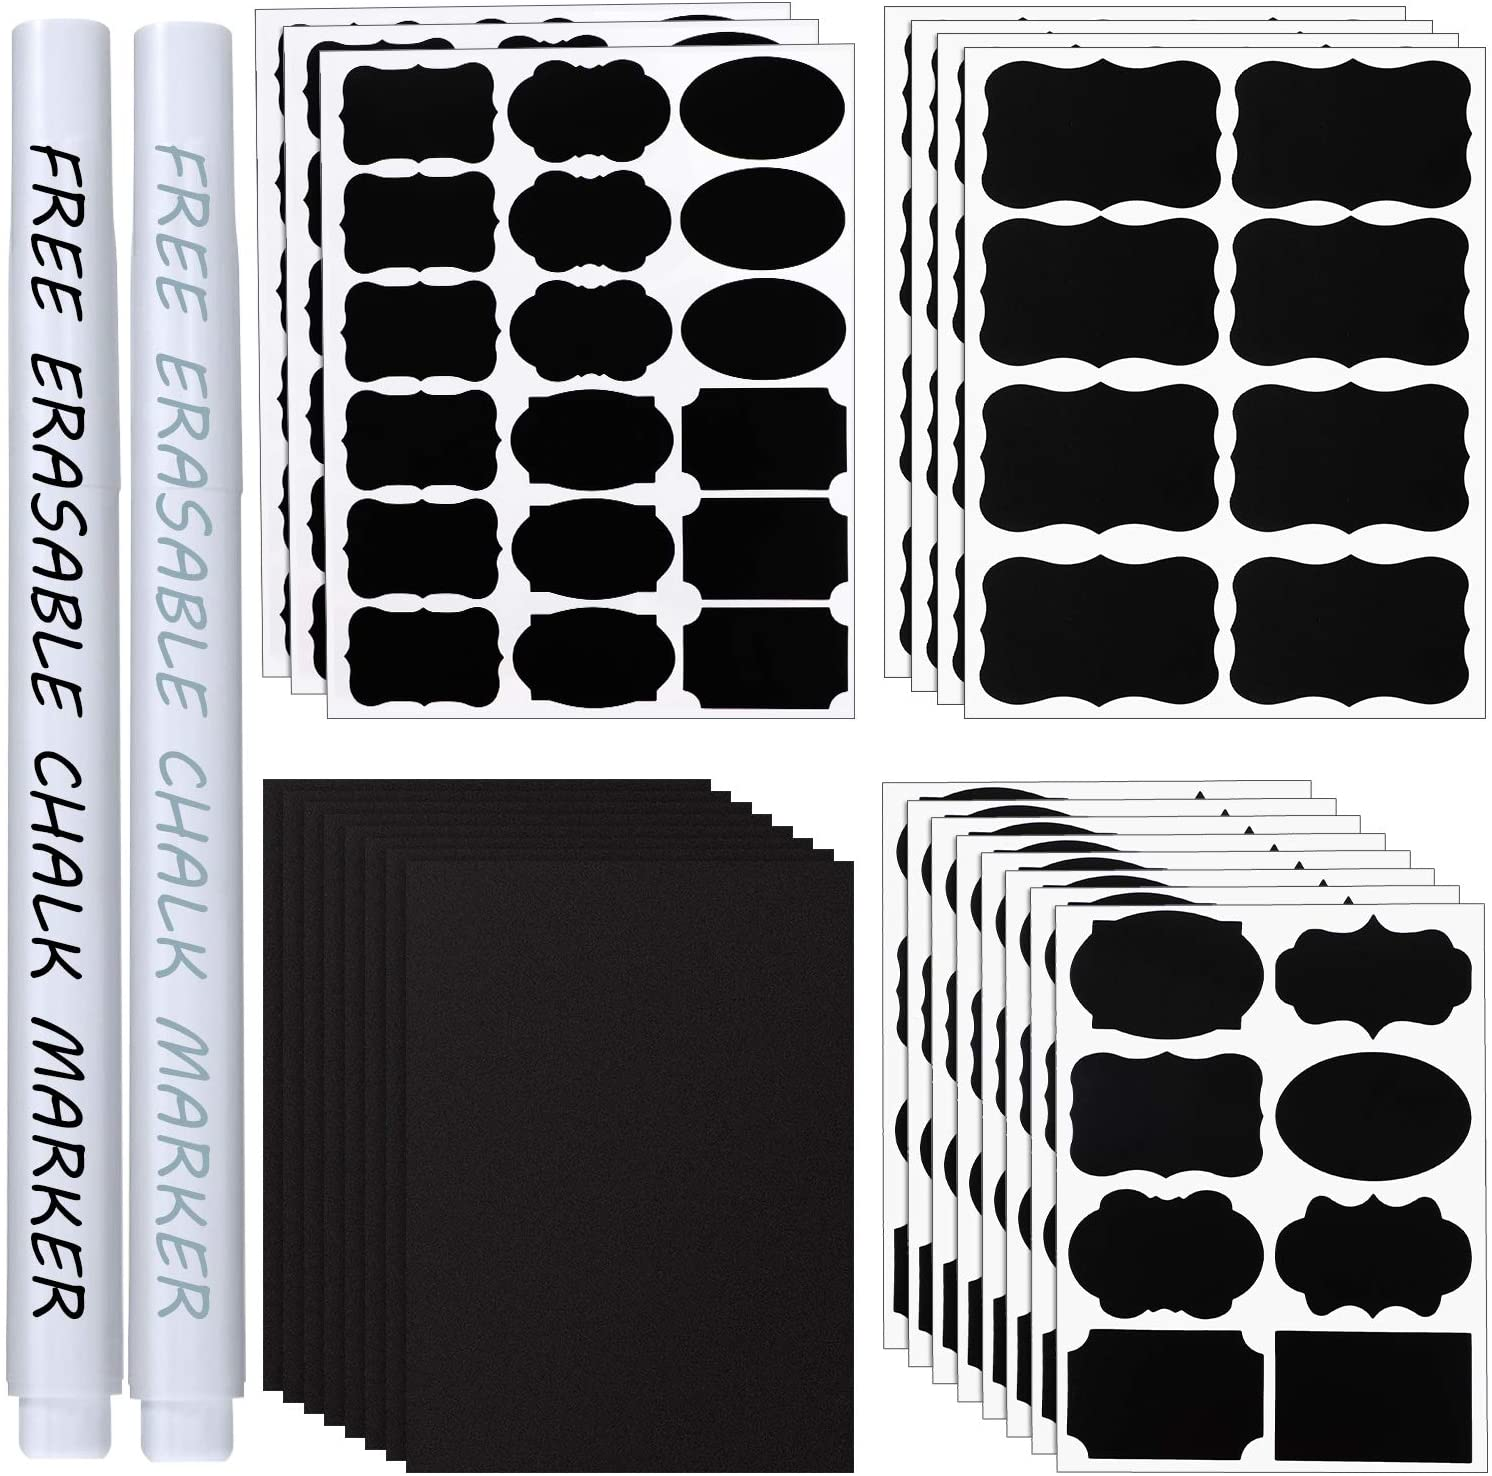 150 Pieces Chalkboard Labels Stickers Waterproof Reusable Blackboard Stickers and 10 Pieces Large Chalkboard Labels with 2 Pieces Erasable Chalk Pens for Jars Parties Craft Rooms Weddings Store